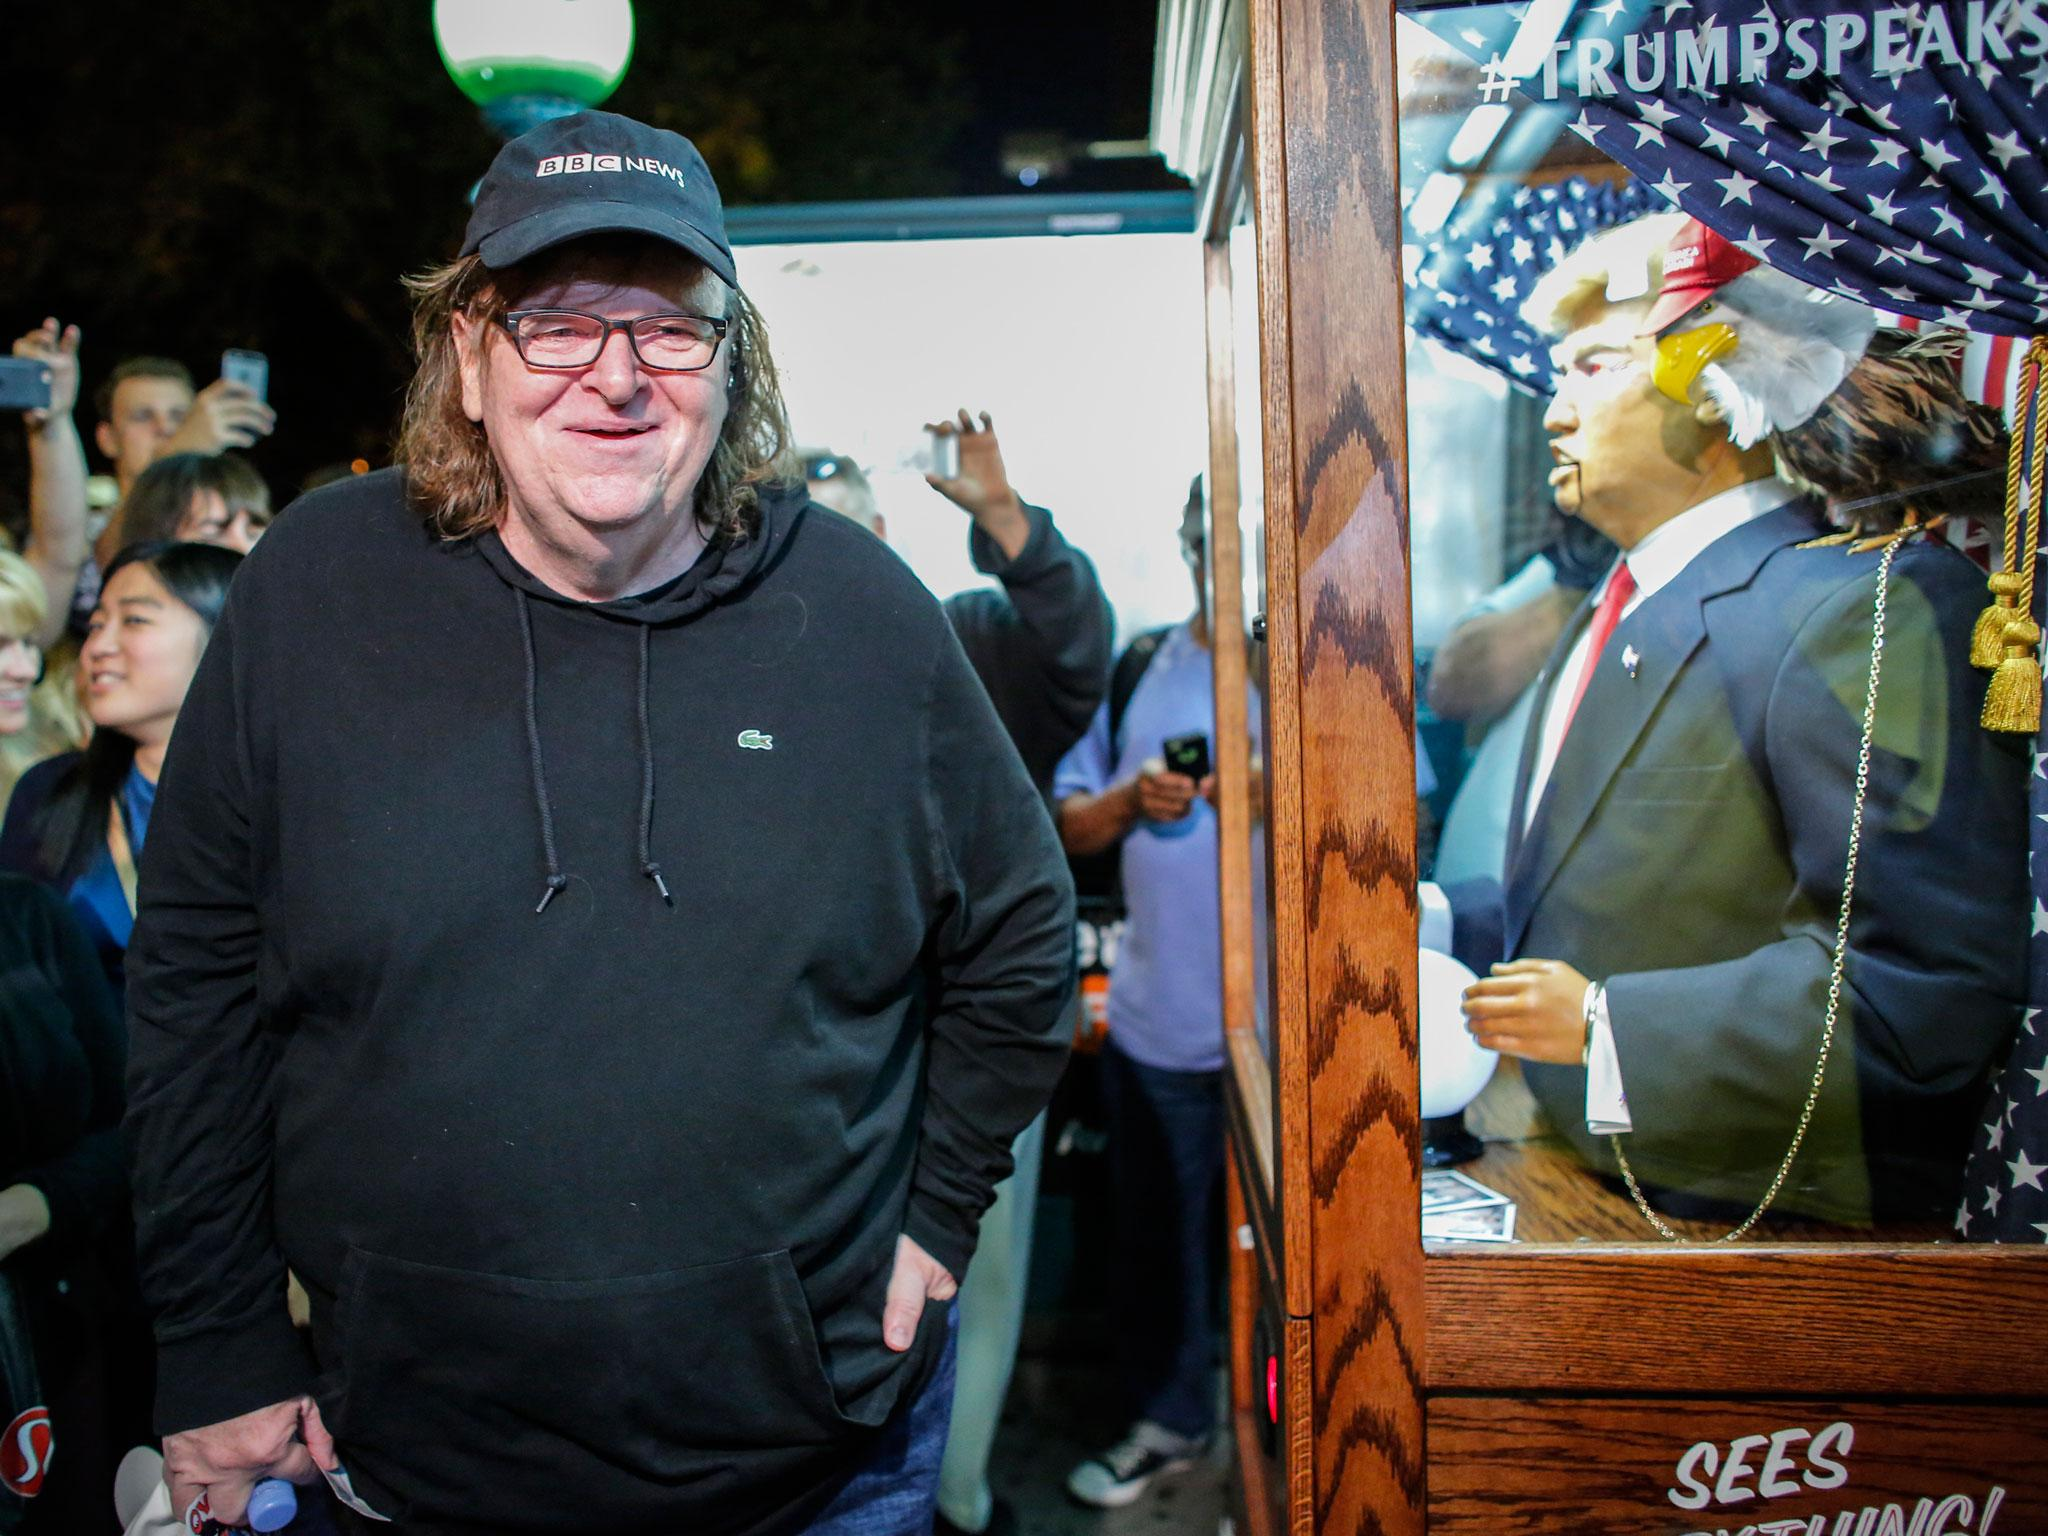 Michael Moore Calls For Protests And Civil Disobedience To Stop Donald  Trump Two Days Before Electoral College Votes  The Independent